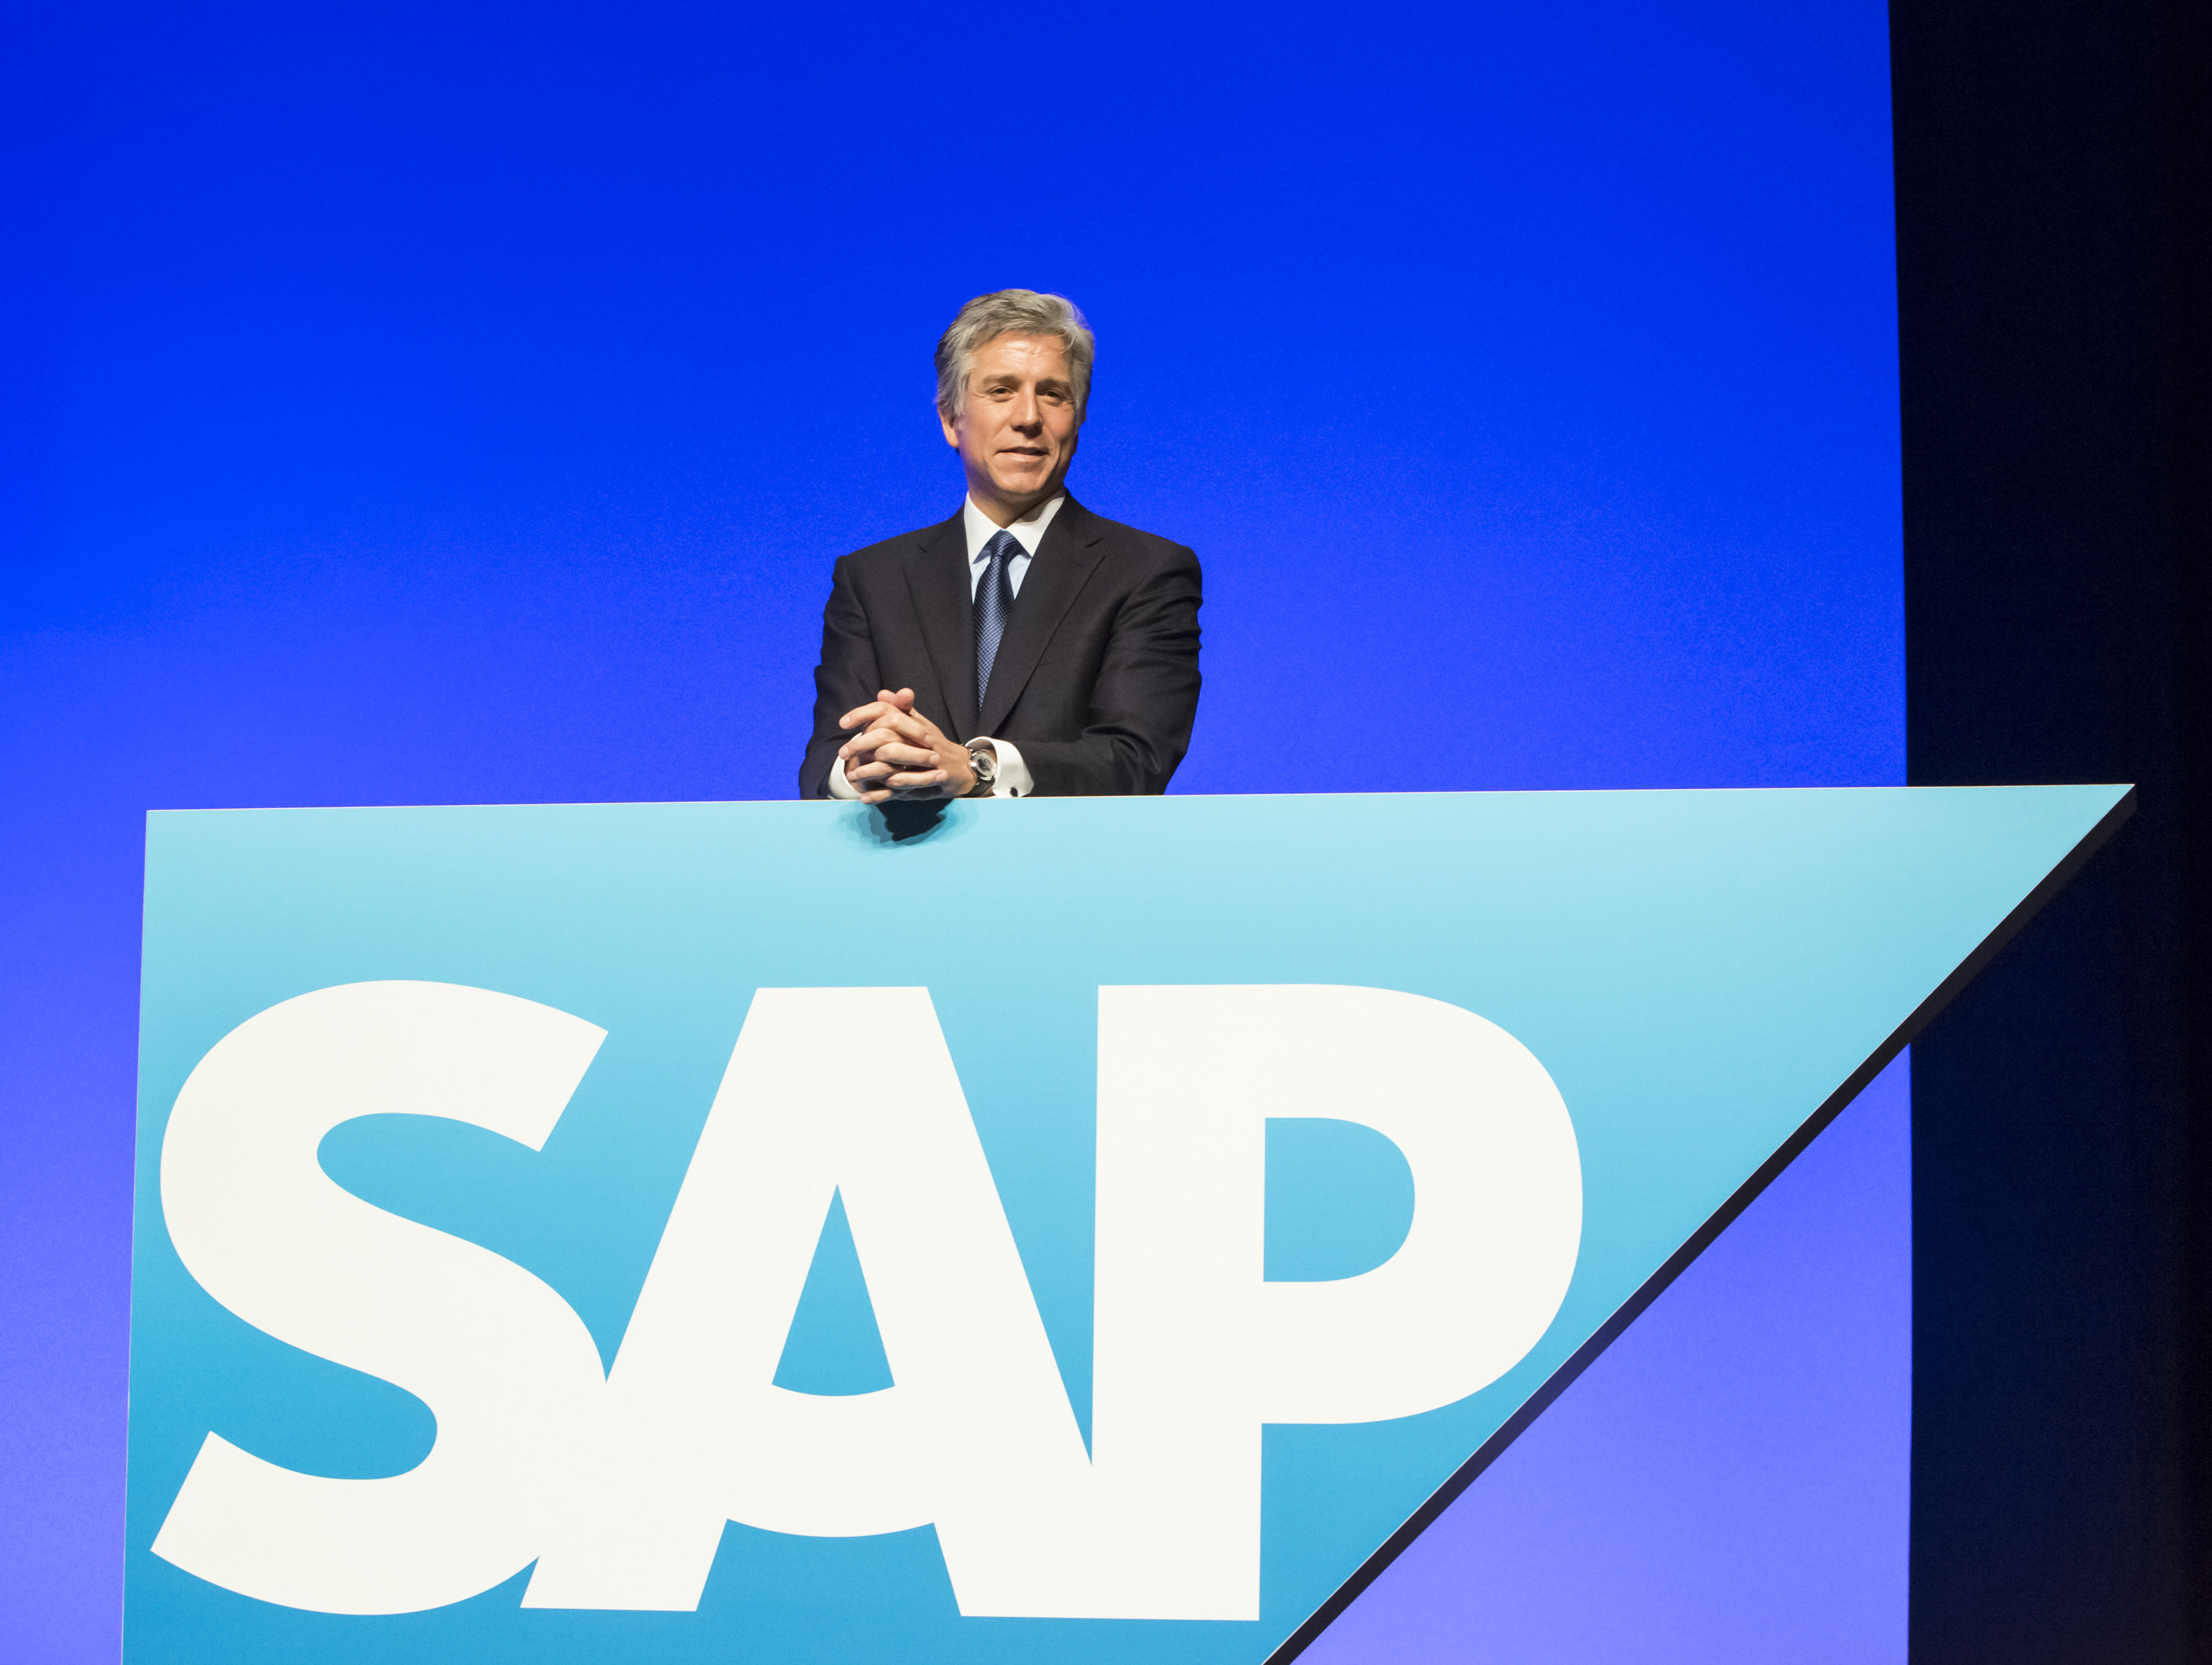 Bill McDermott, chief executive officer of SAP AG, poses for a photograph during the software company's annual general meeting in Mannheim, Germany, on May 21, 2014.